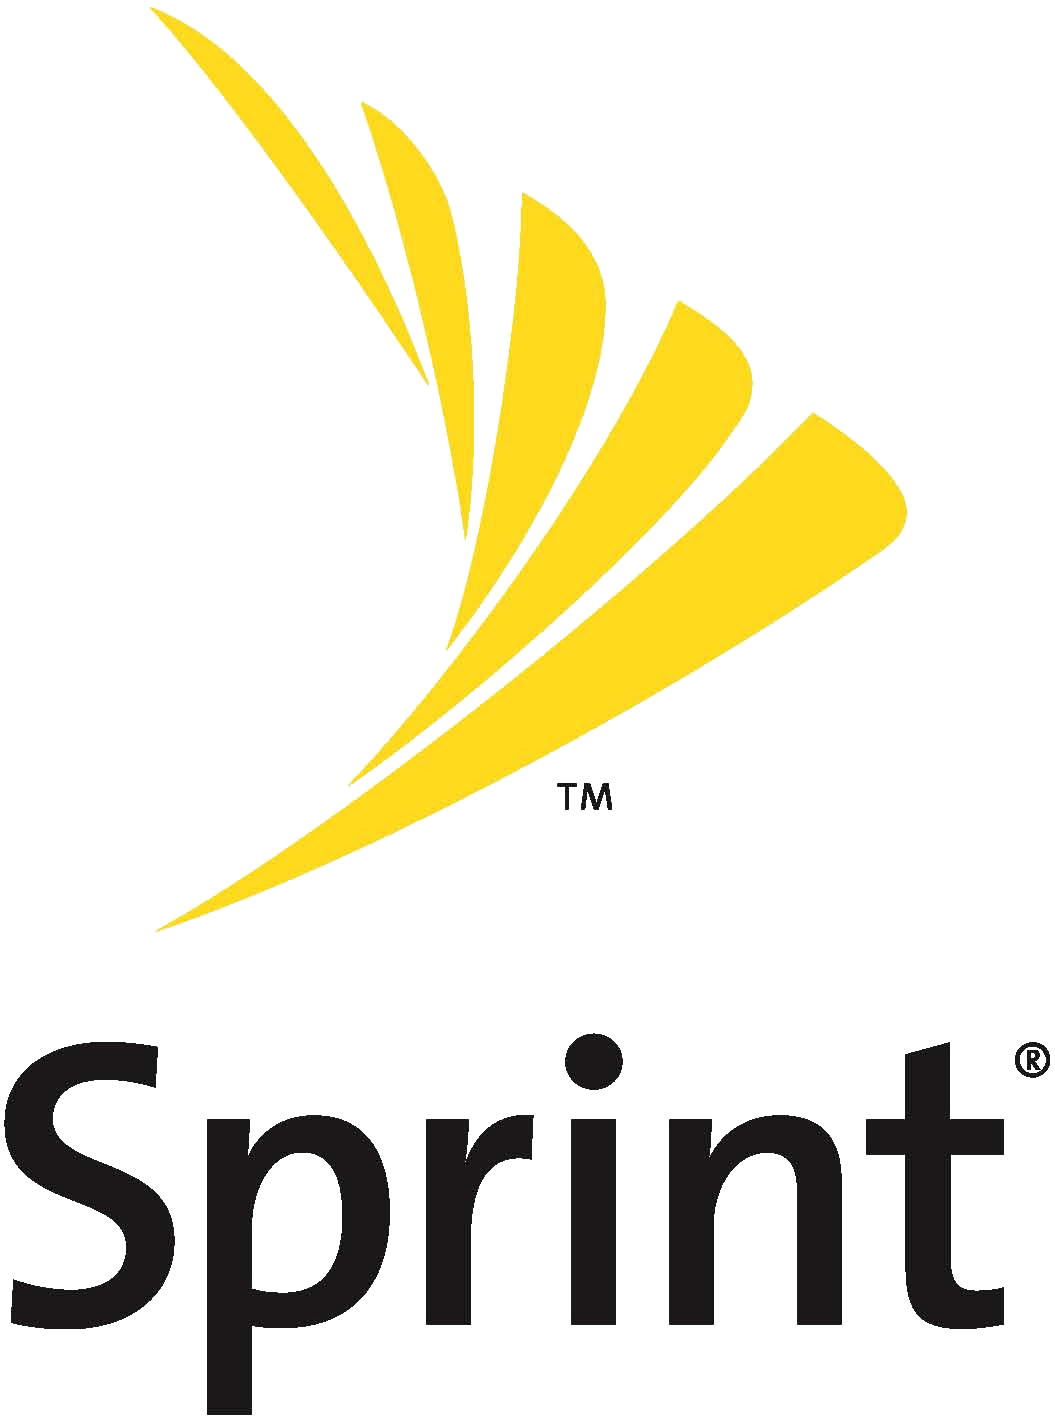 Sprint Almost Bought MetroPCS [Rumor]